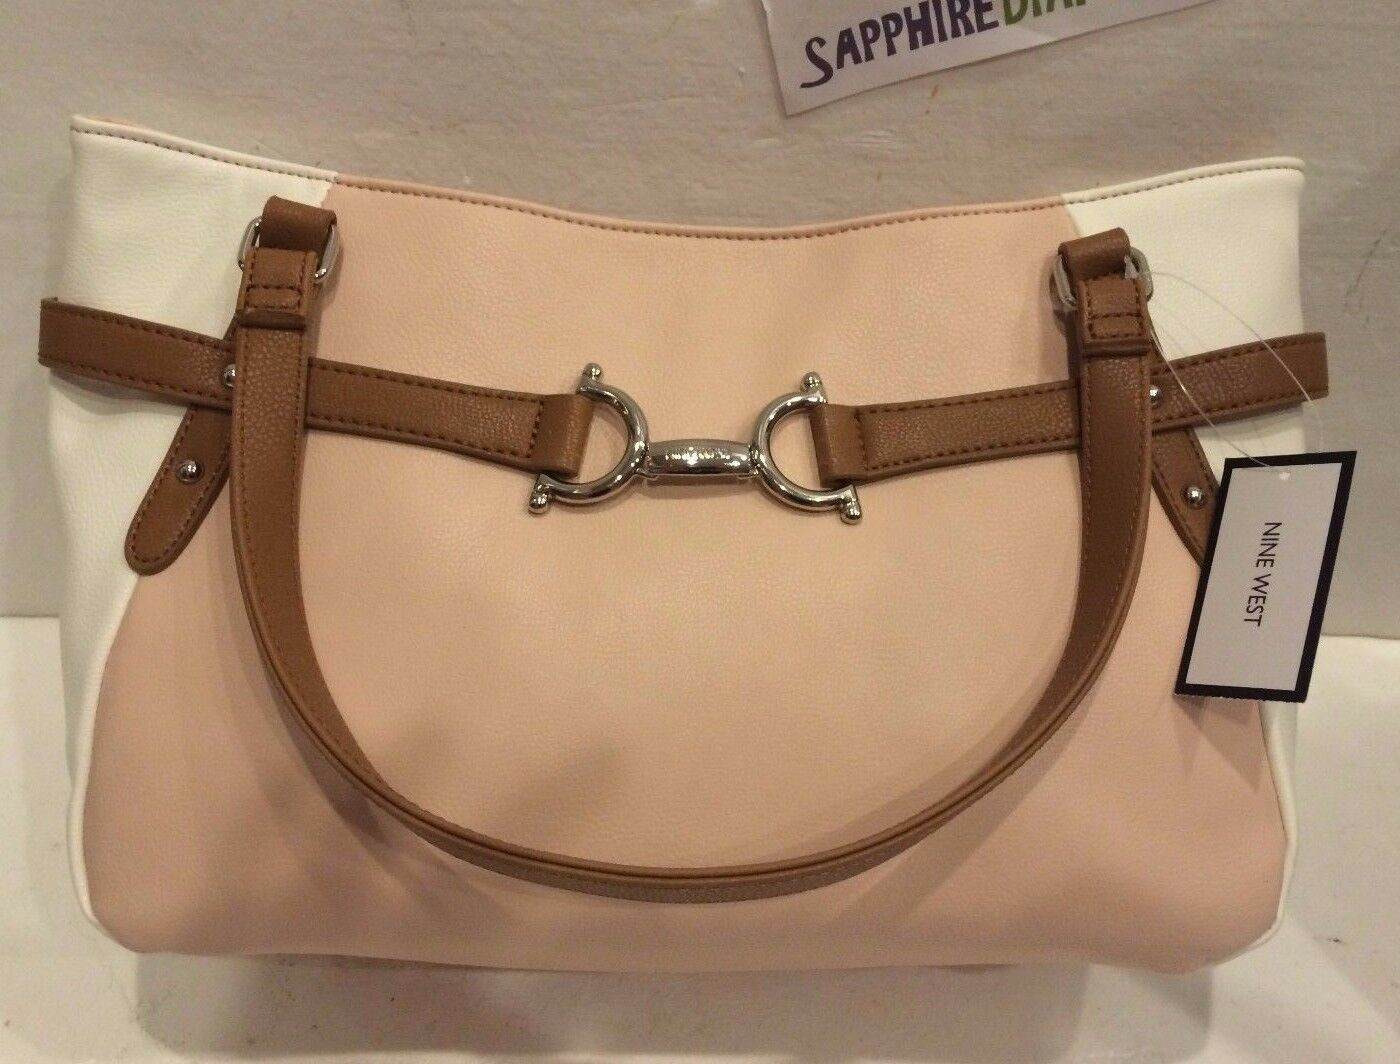 NINE WEST Peach & White Purse Bag Great Gift! Brand New! 604